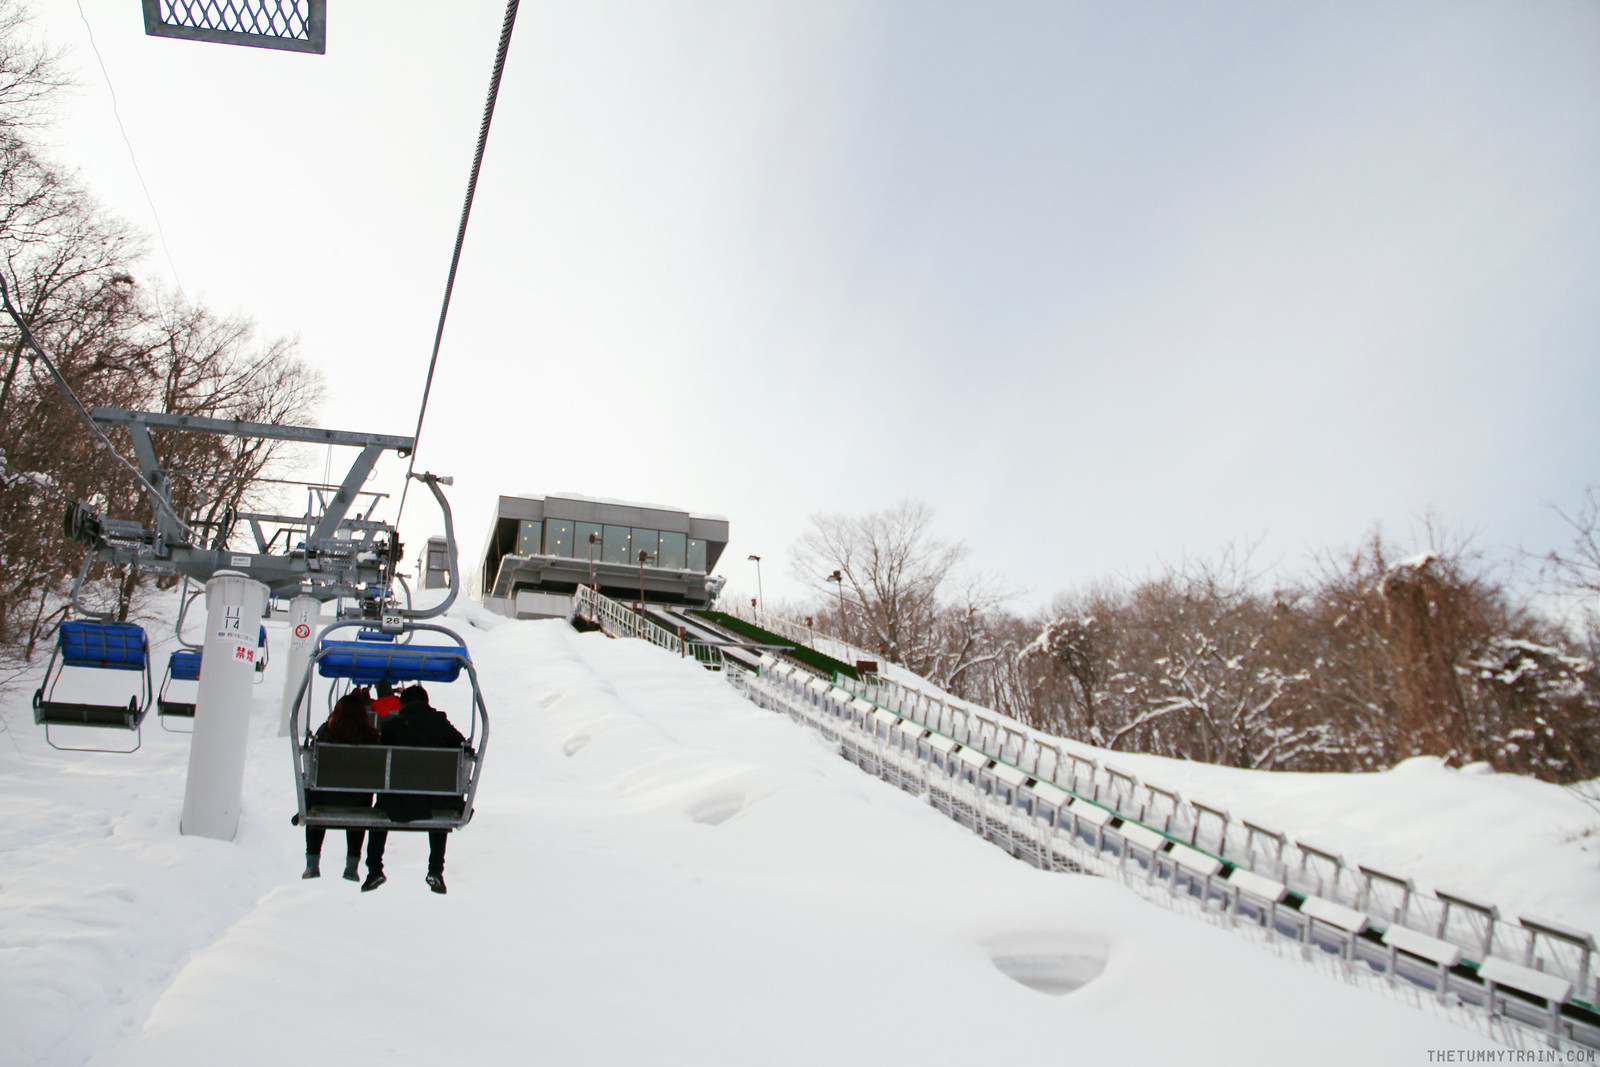 32536468030 b581a7395c h - Sapporo Travel Diary 2017: Lifting off to the Okurayama Ski Jump Viewing Lounge